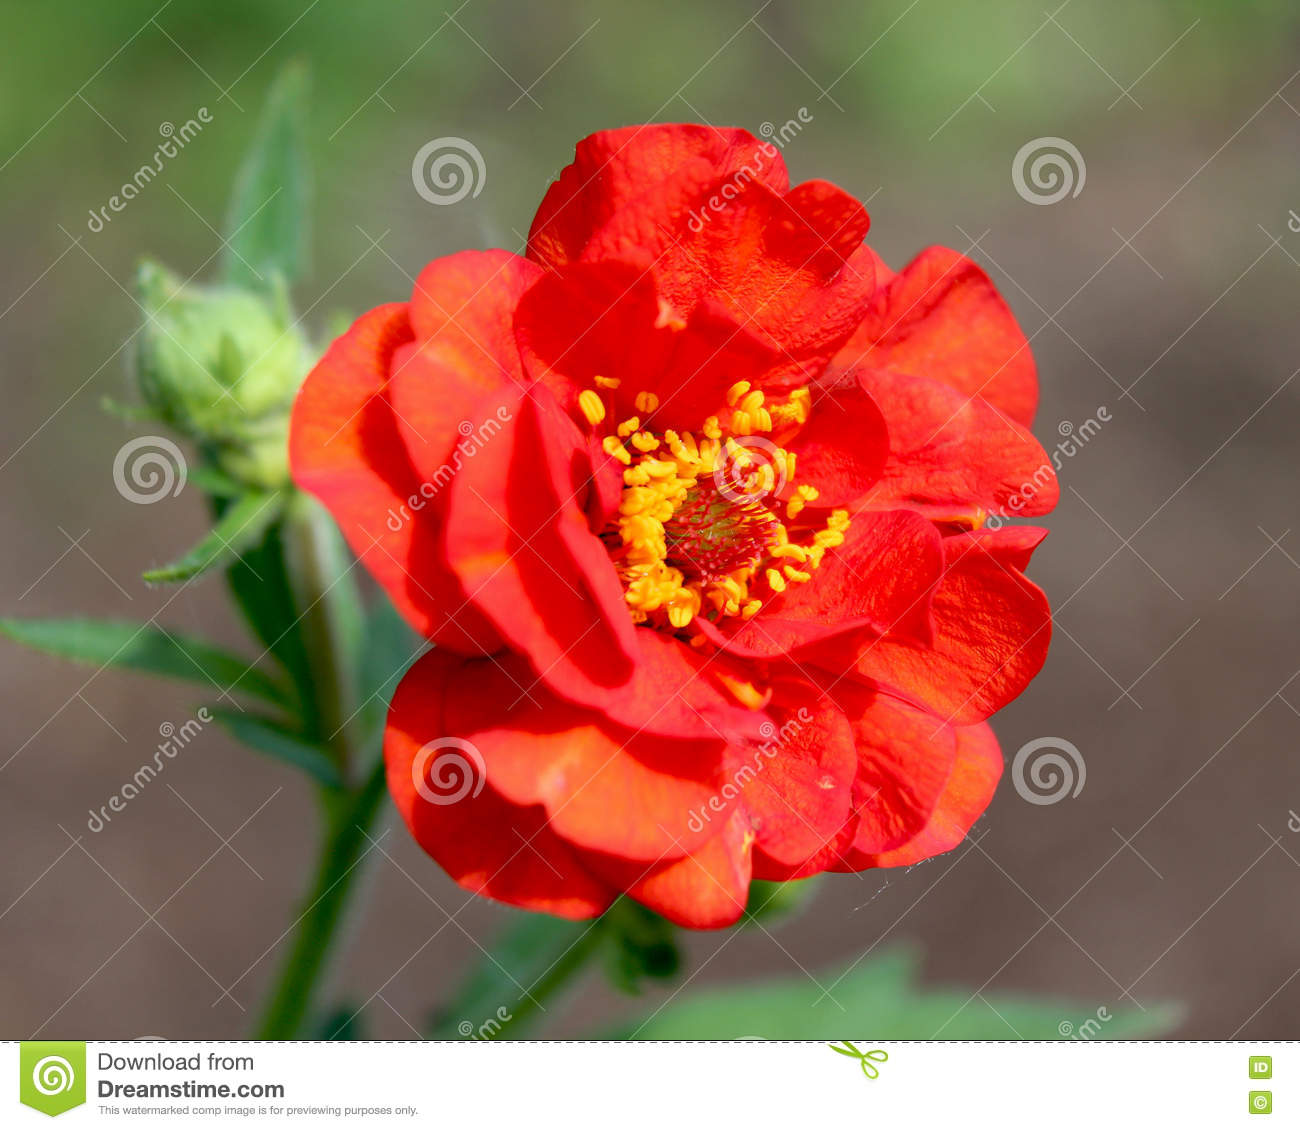 Red geum stock photo image of perennial flora head 72185260 the bright red double flower of geum chiloense mrs j bradshaw a perennial garden plant also known as avens mightylinksfo